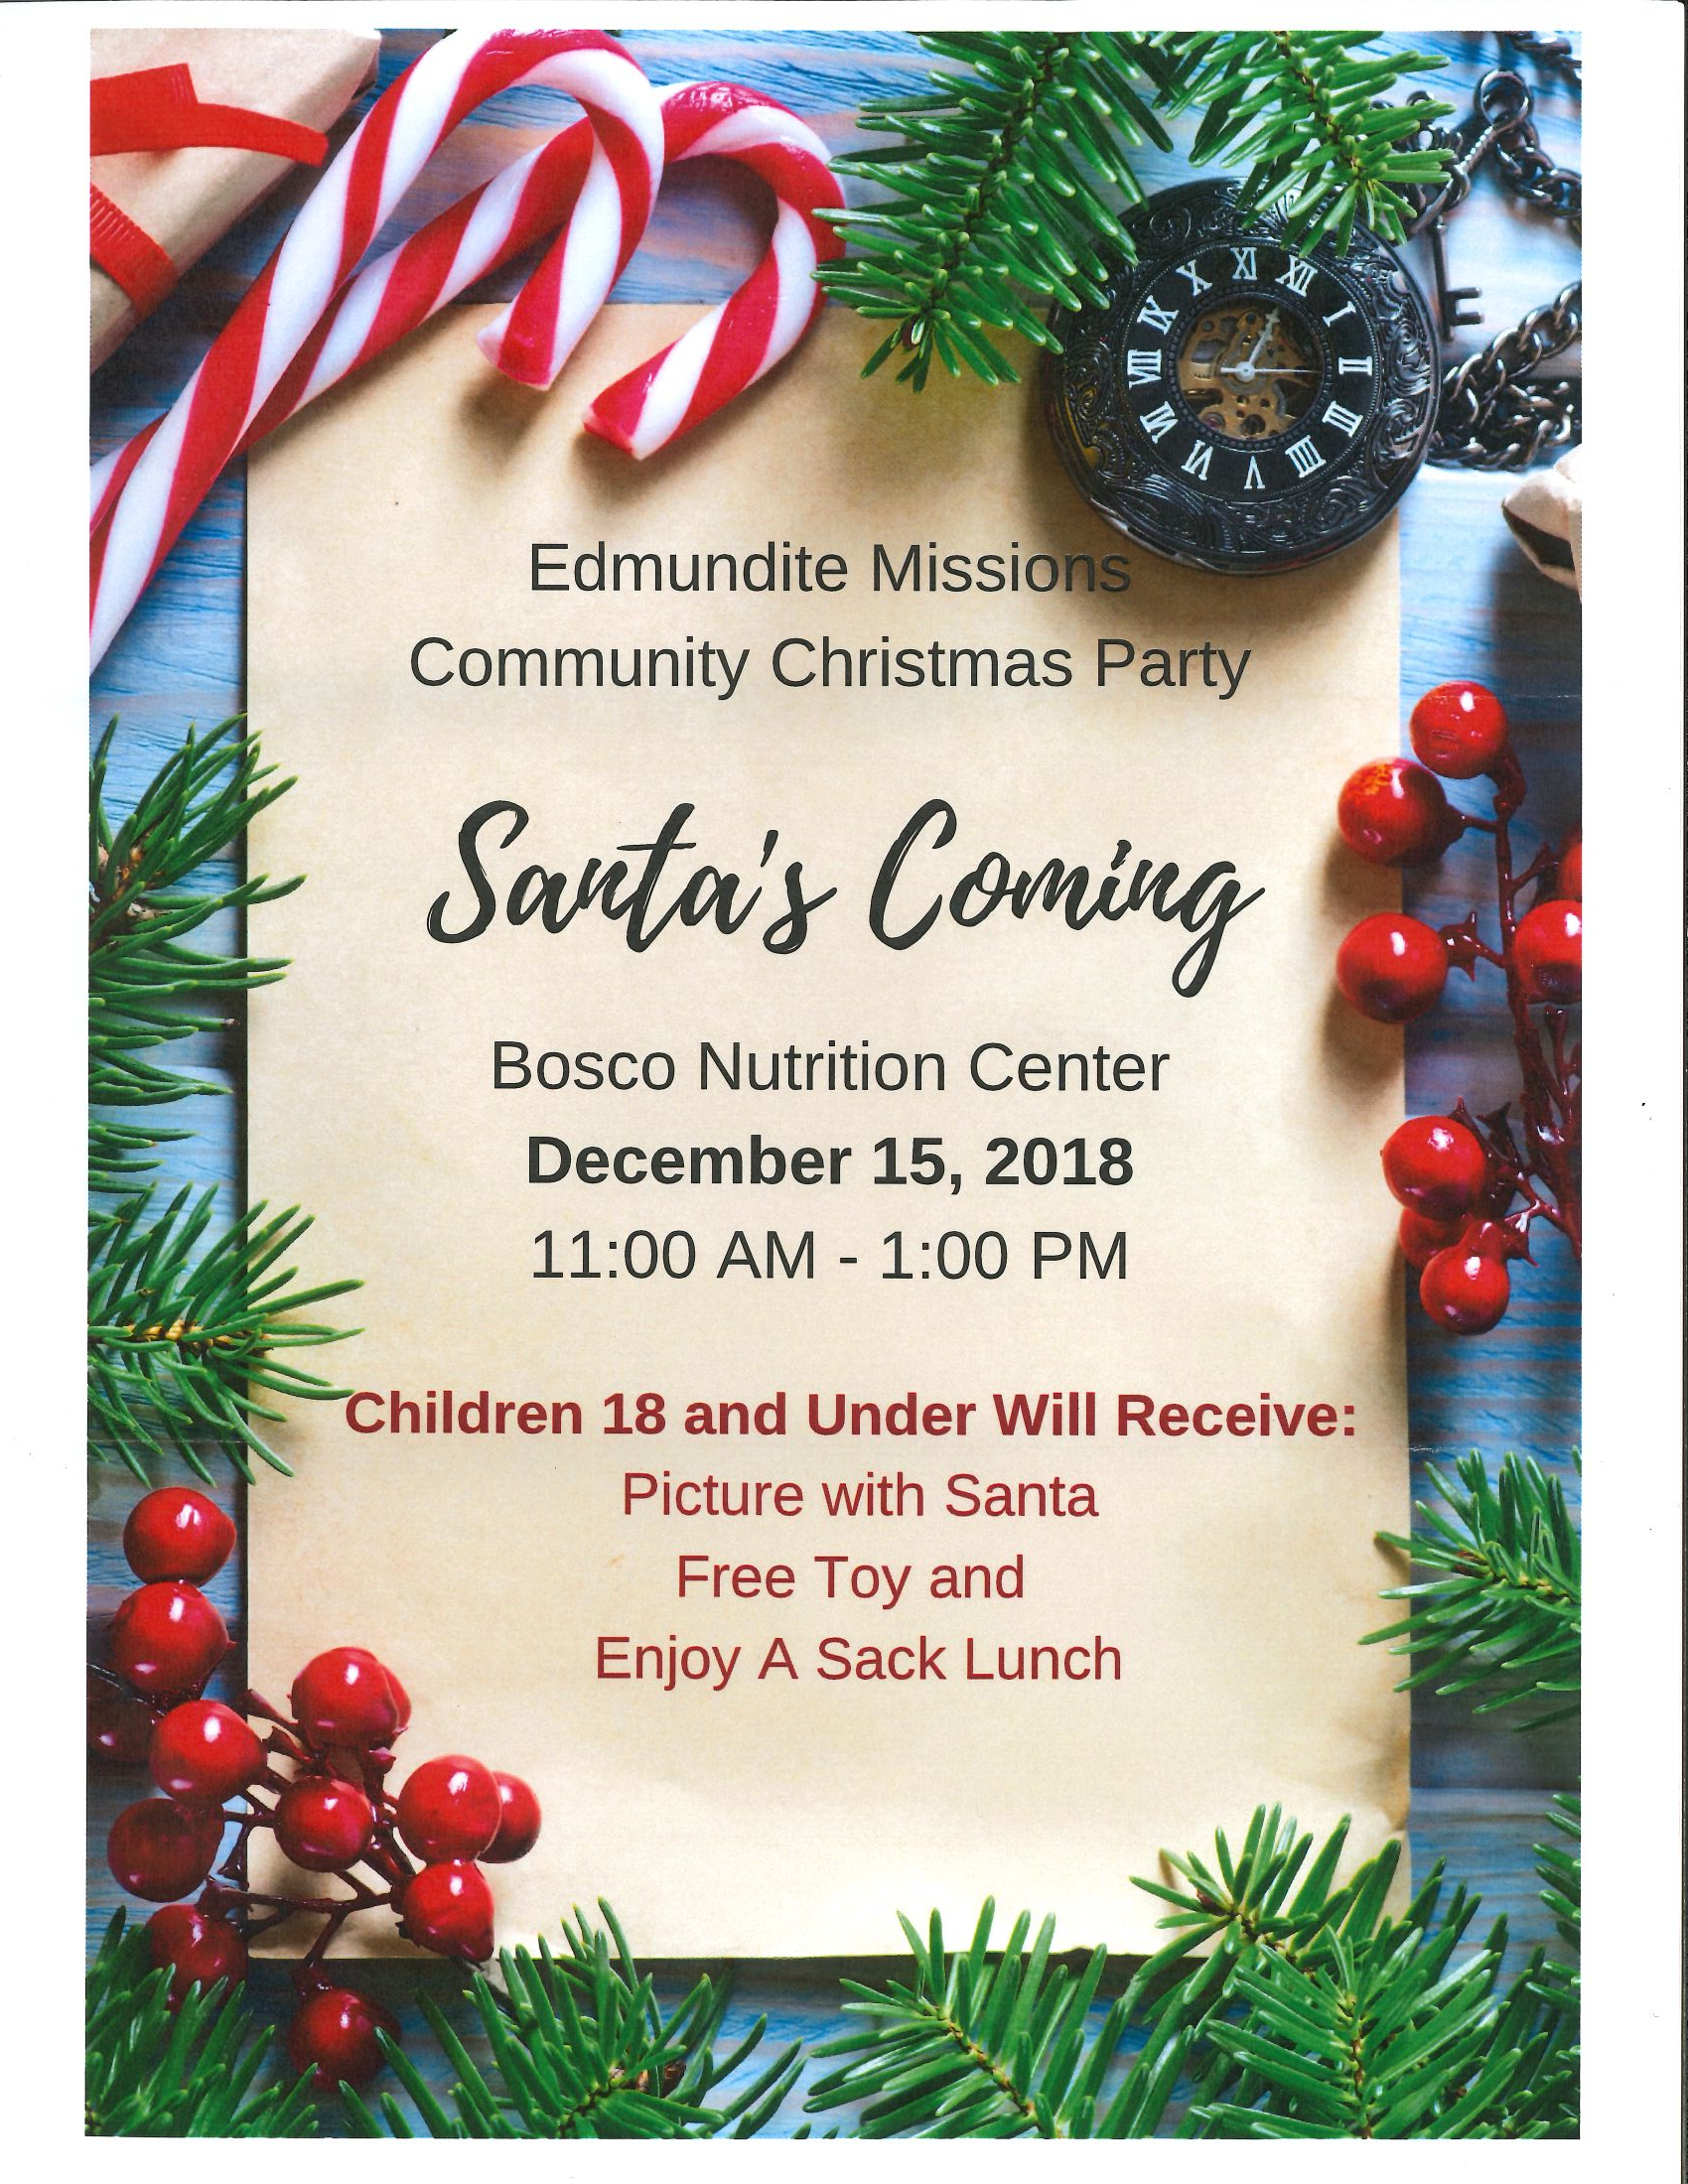 Edmunidte Community Christmas Party